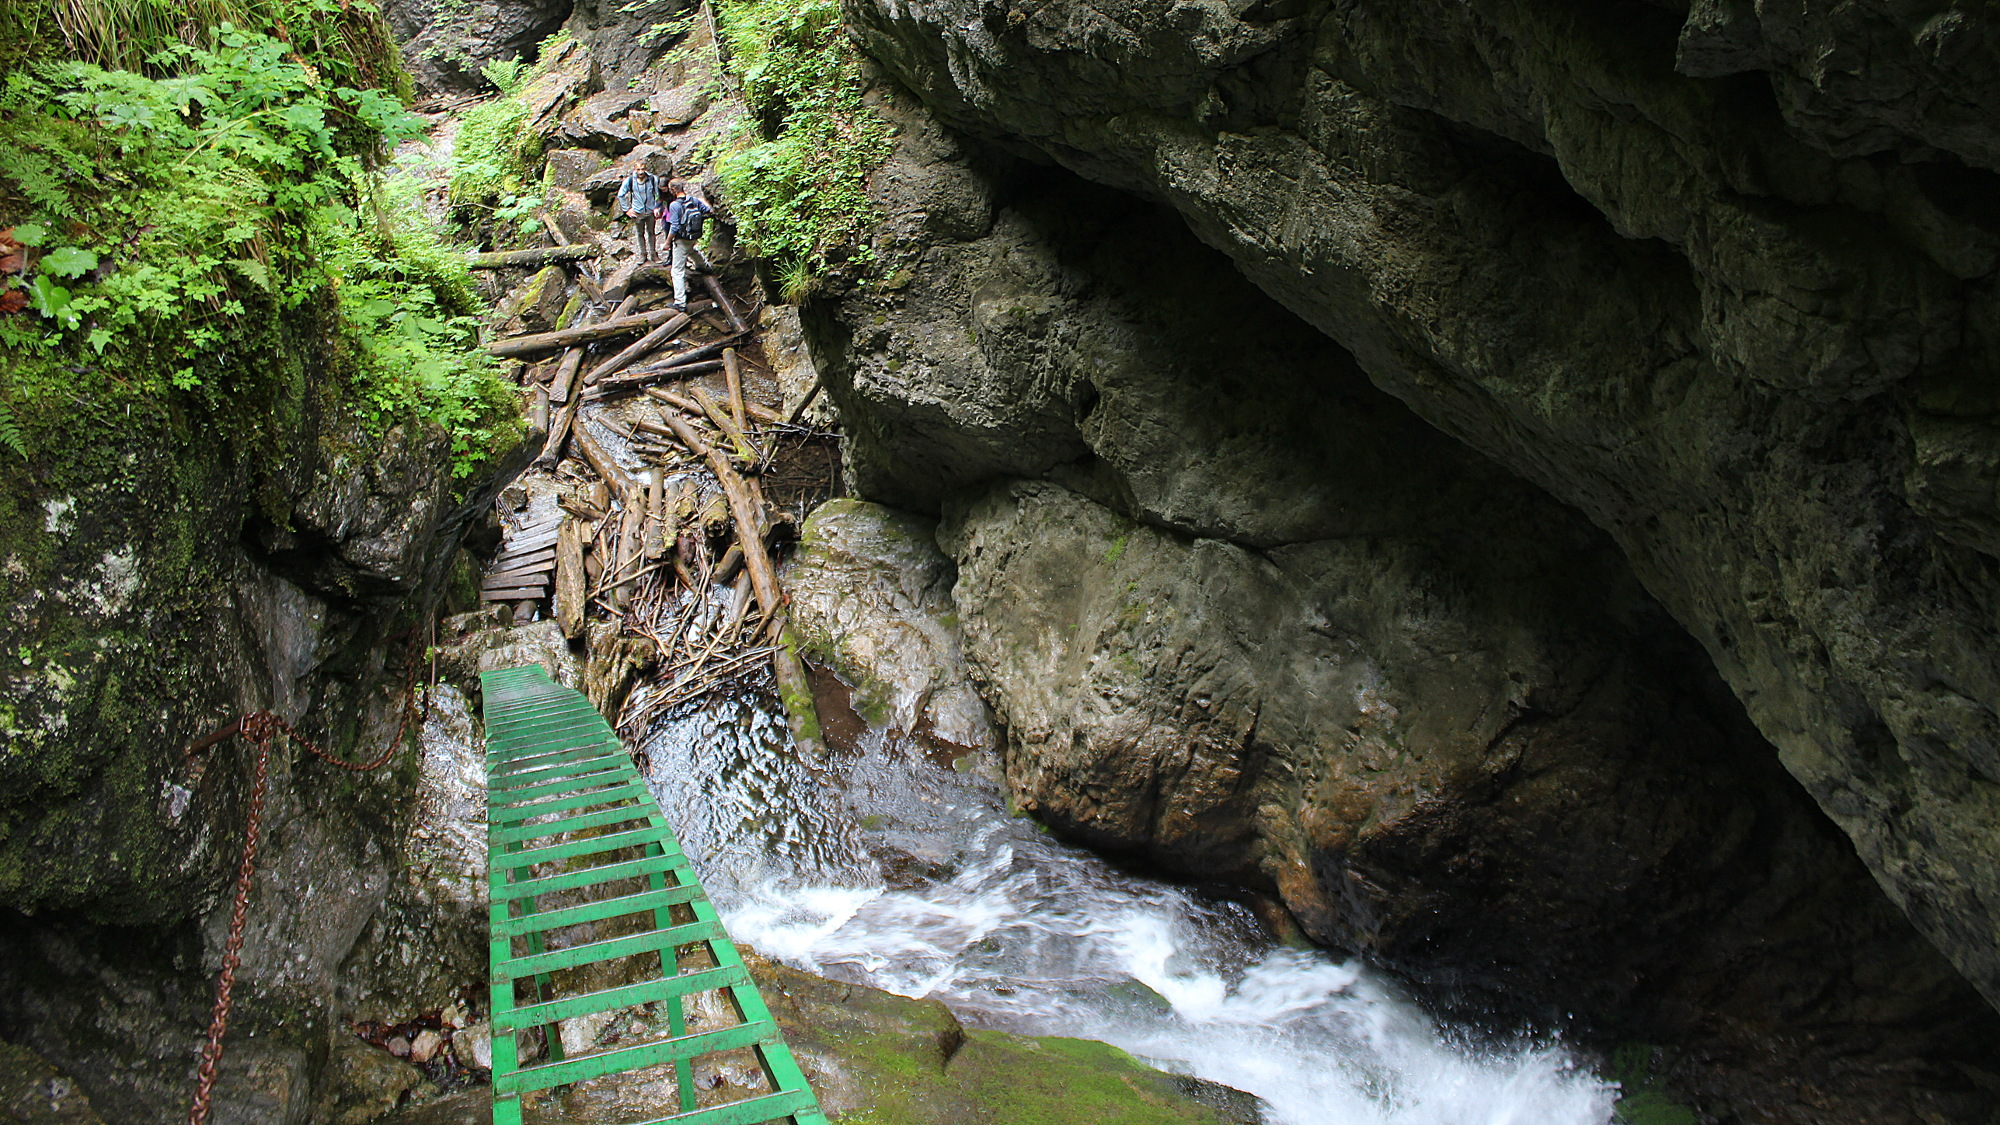 Steep green ladder above a waterfall in Veľký Sokol gorge.